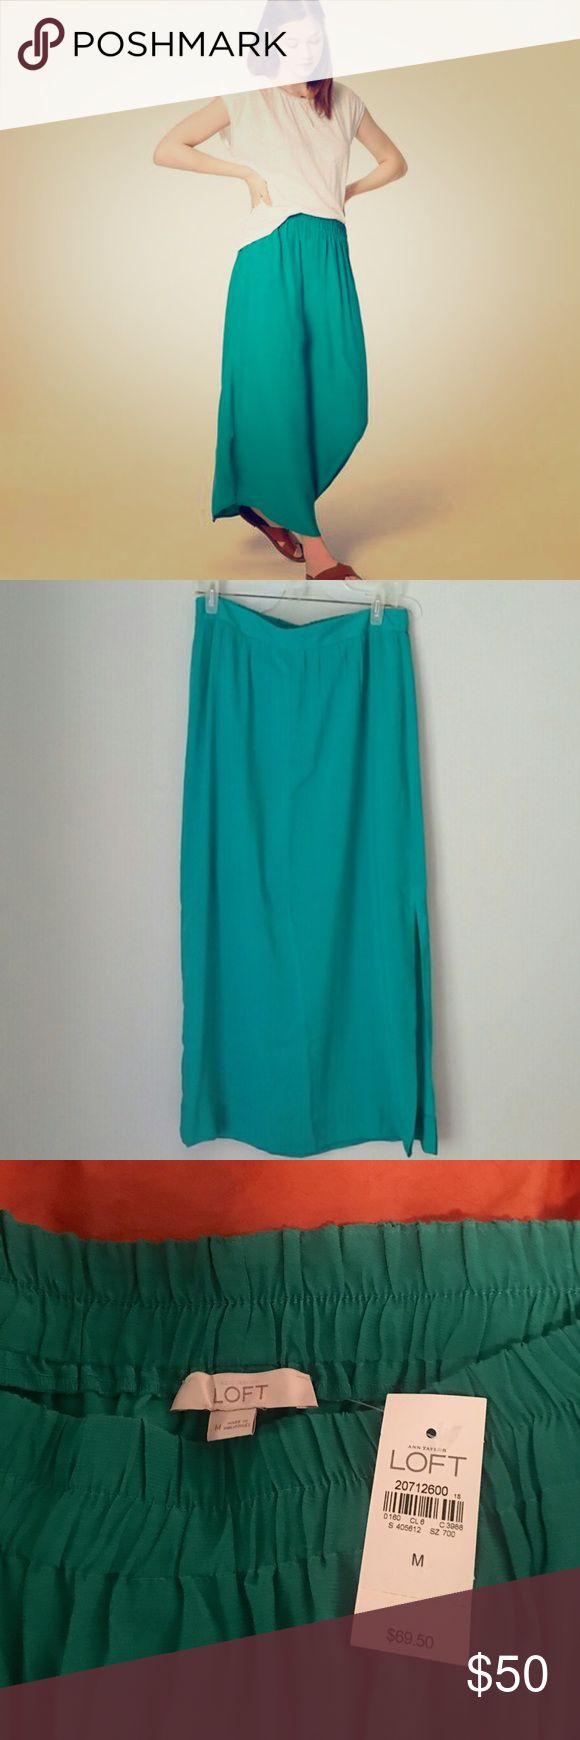 🆕 LOFT Teal Maxi Skirt NWT Never Been Worn but too late to return.  This skirt has so many possibilities and needs a new home!!  Accepting offers or bundle to save! LOFT Skirts Maxi